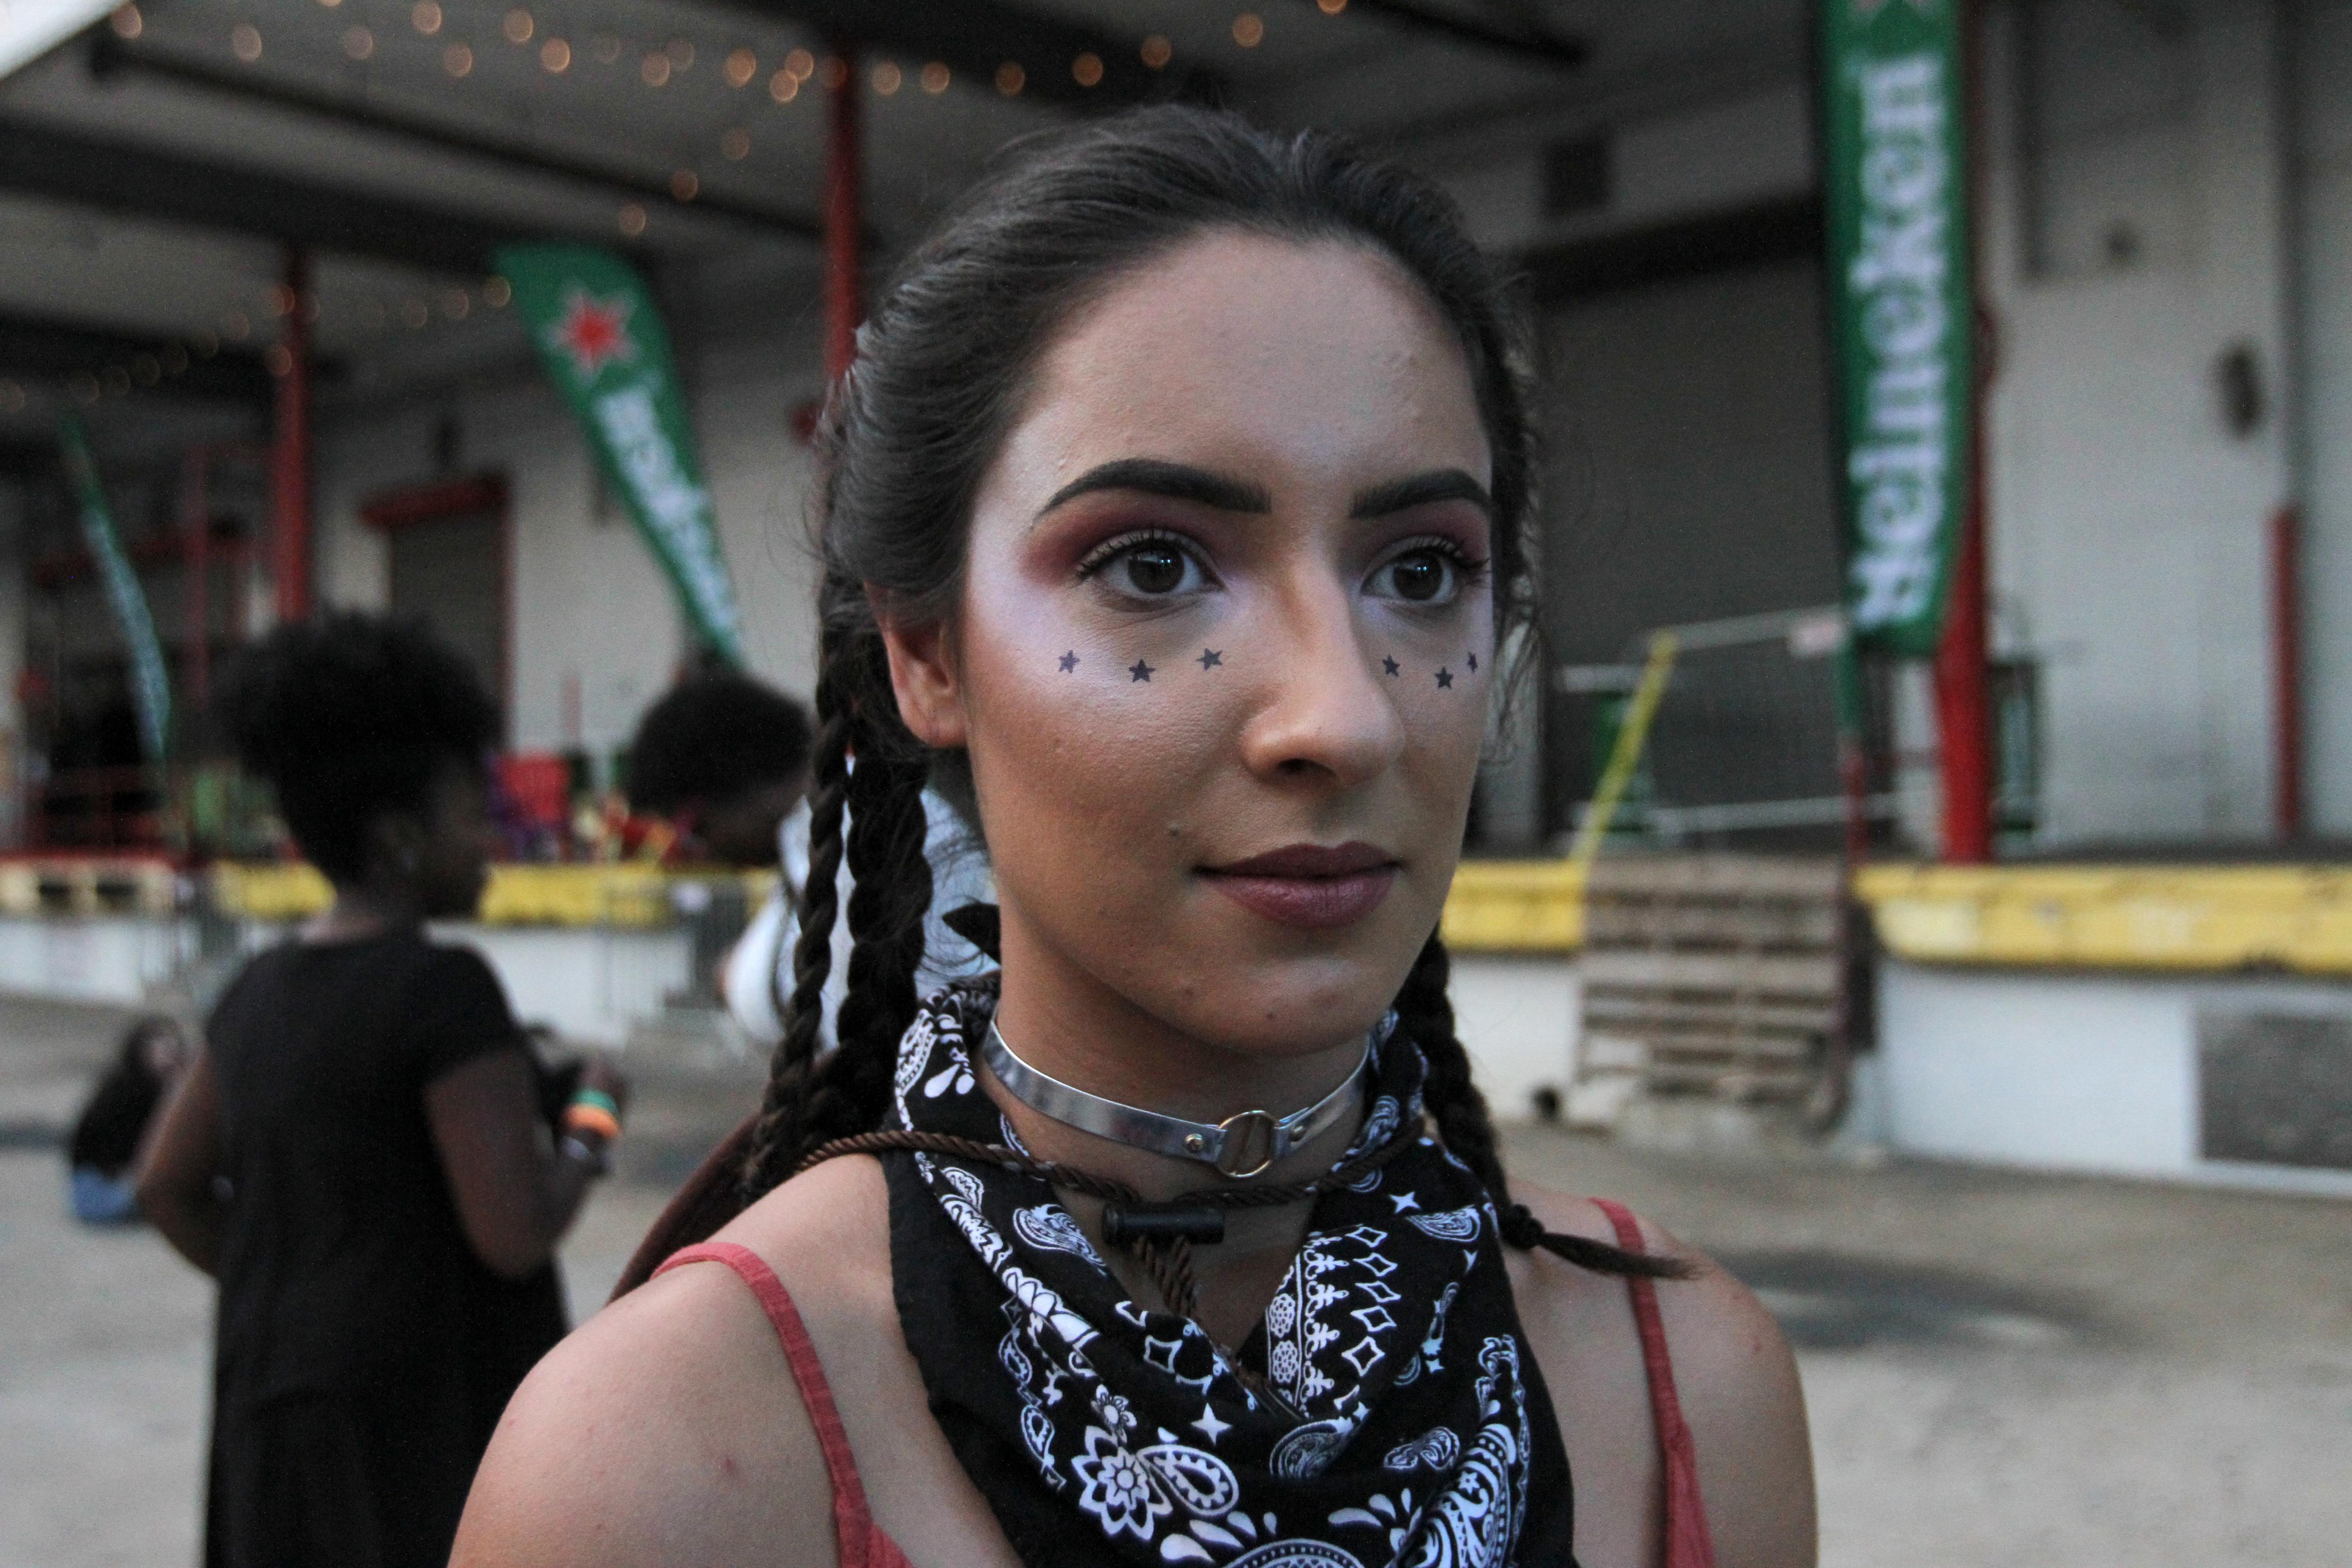 Stars adorned the cheeks of many festival-goers.{&amp;nbsp;}(Amanda Andrade-Rhoades/DC Refined)<p></p>